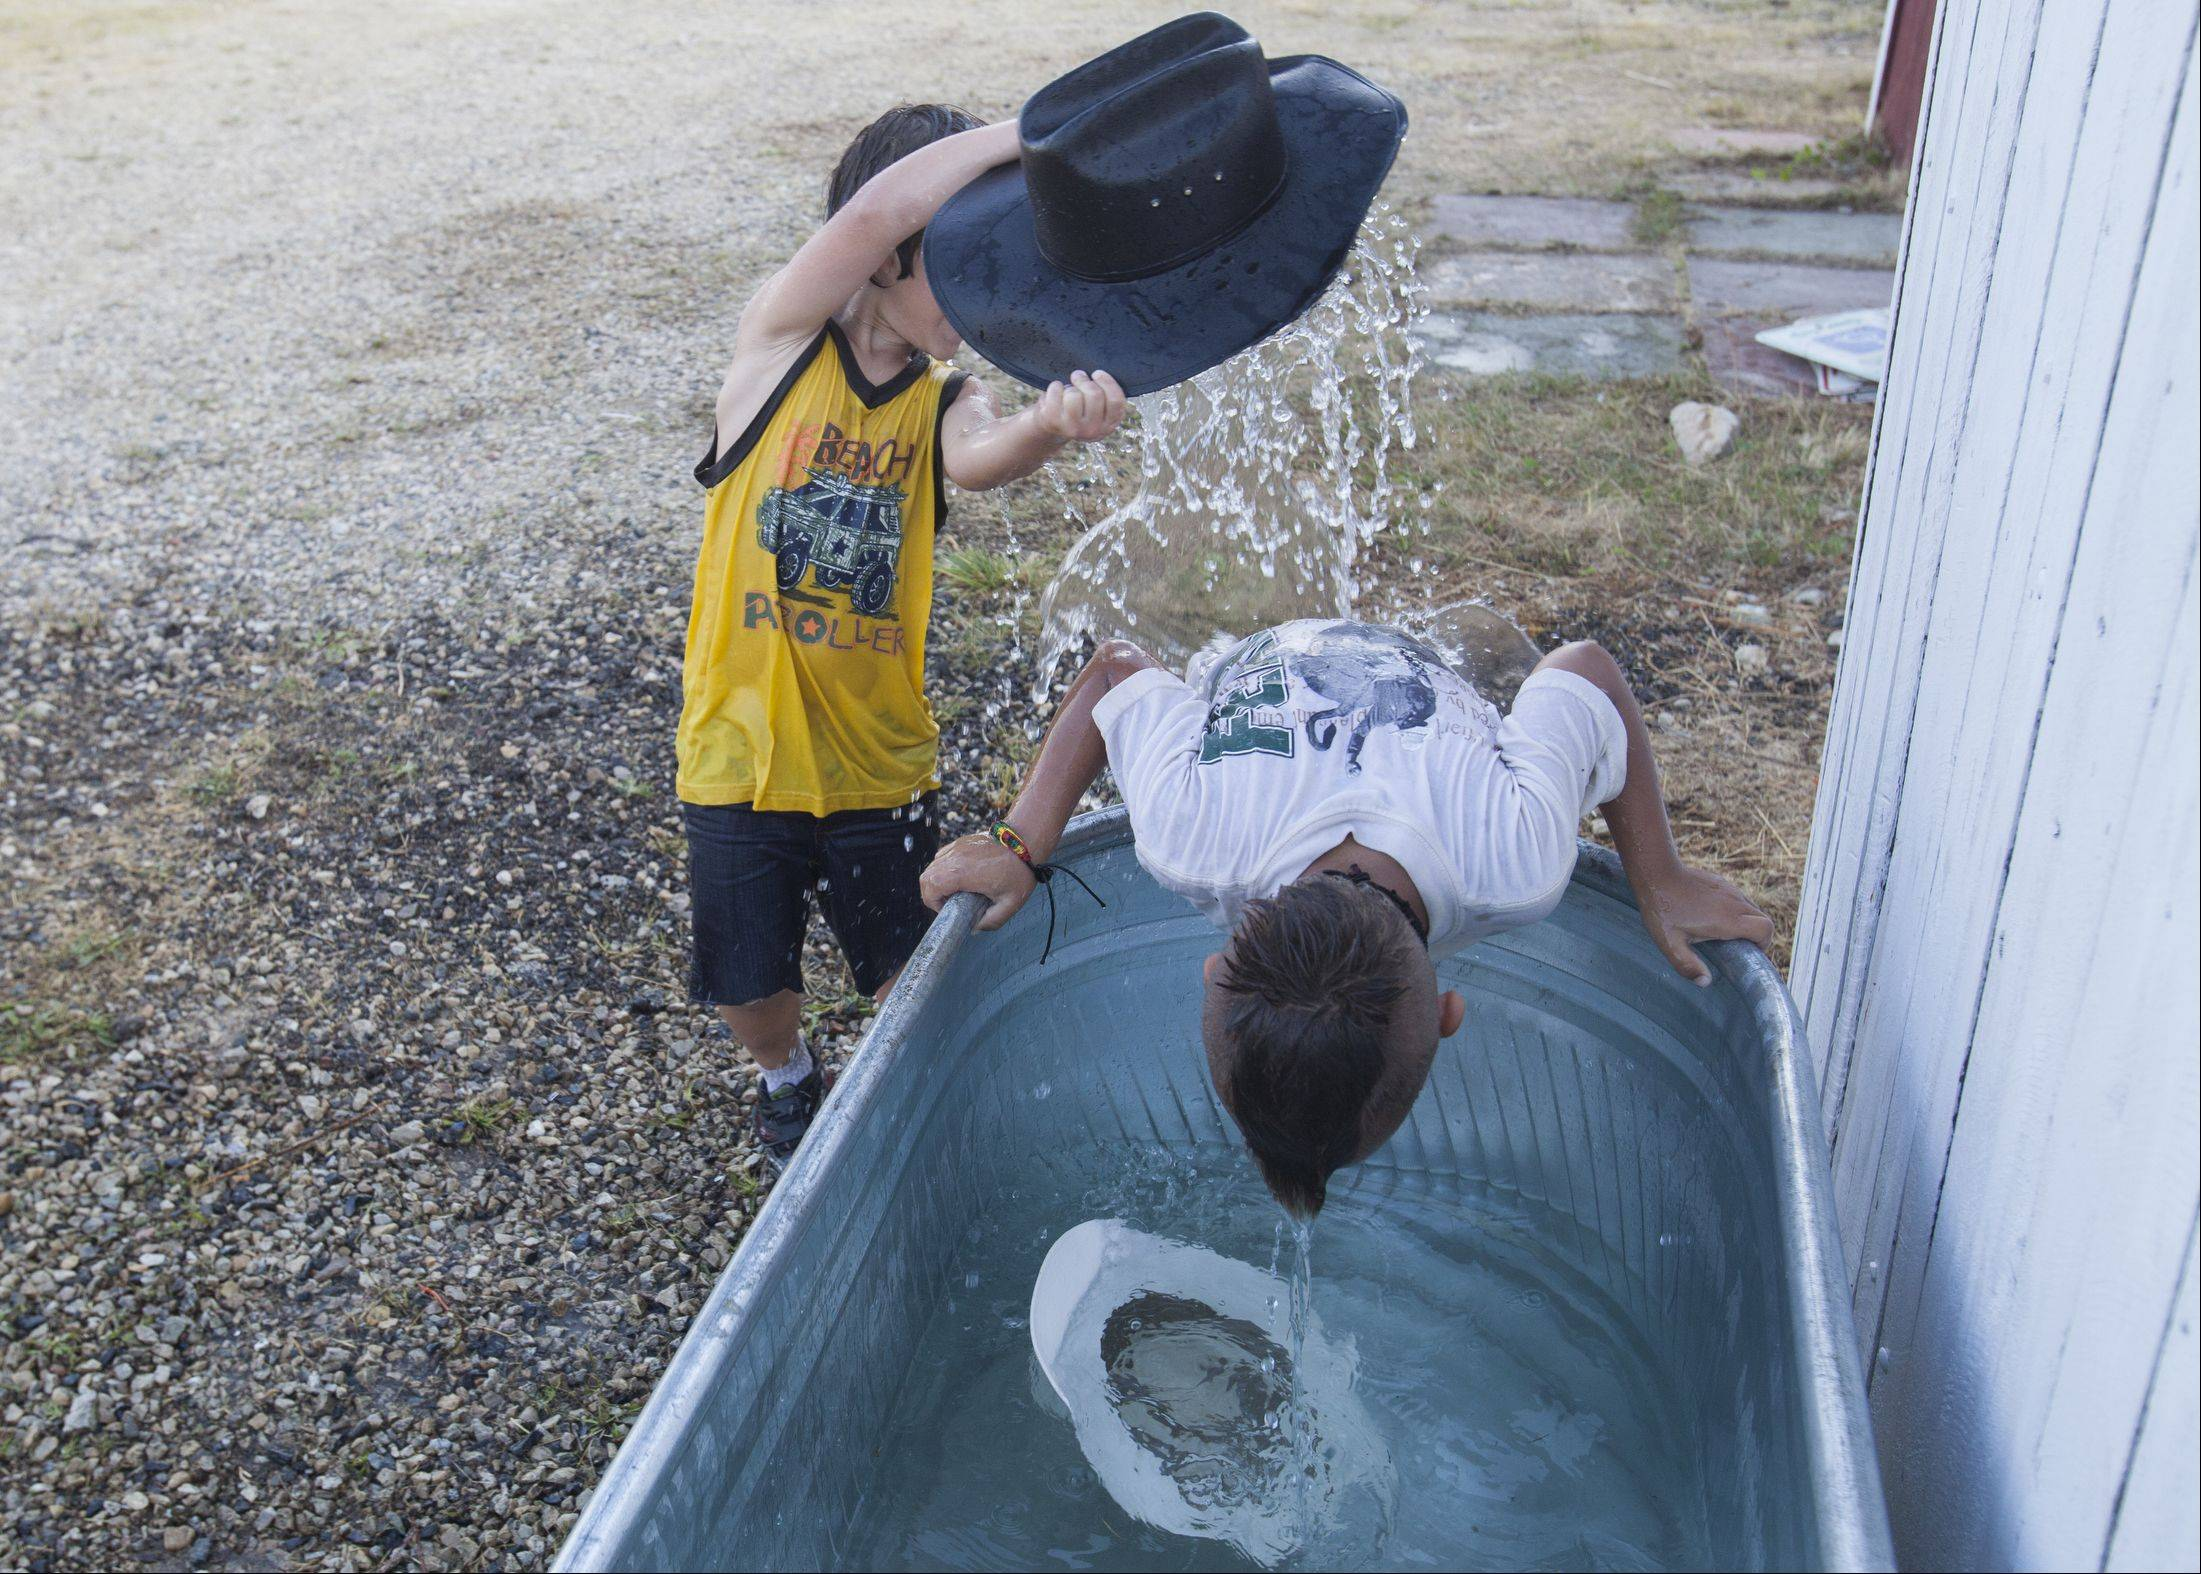 Anthony DeTomari, 7, dumps a hat of water on Luka Phillips, 6, both of Wauconda, as they try to beat the heat Sunday during the 49th IPRA Championship Rodeo in Wauconda.